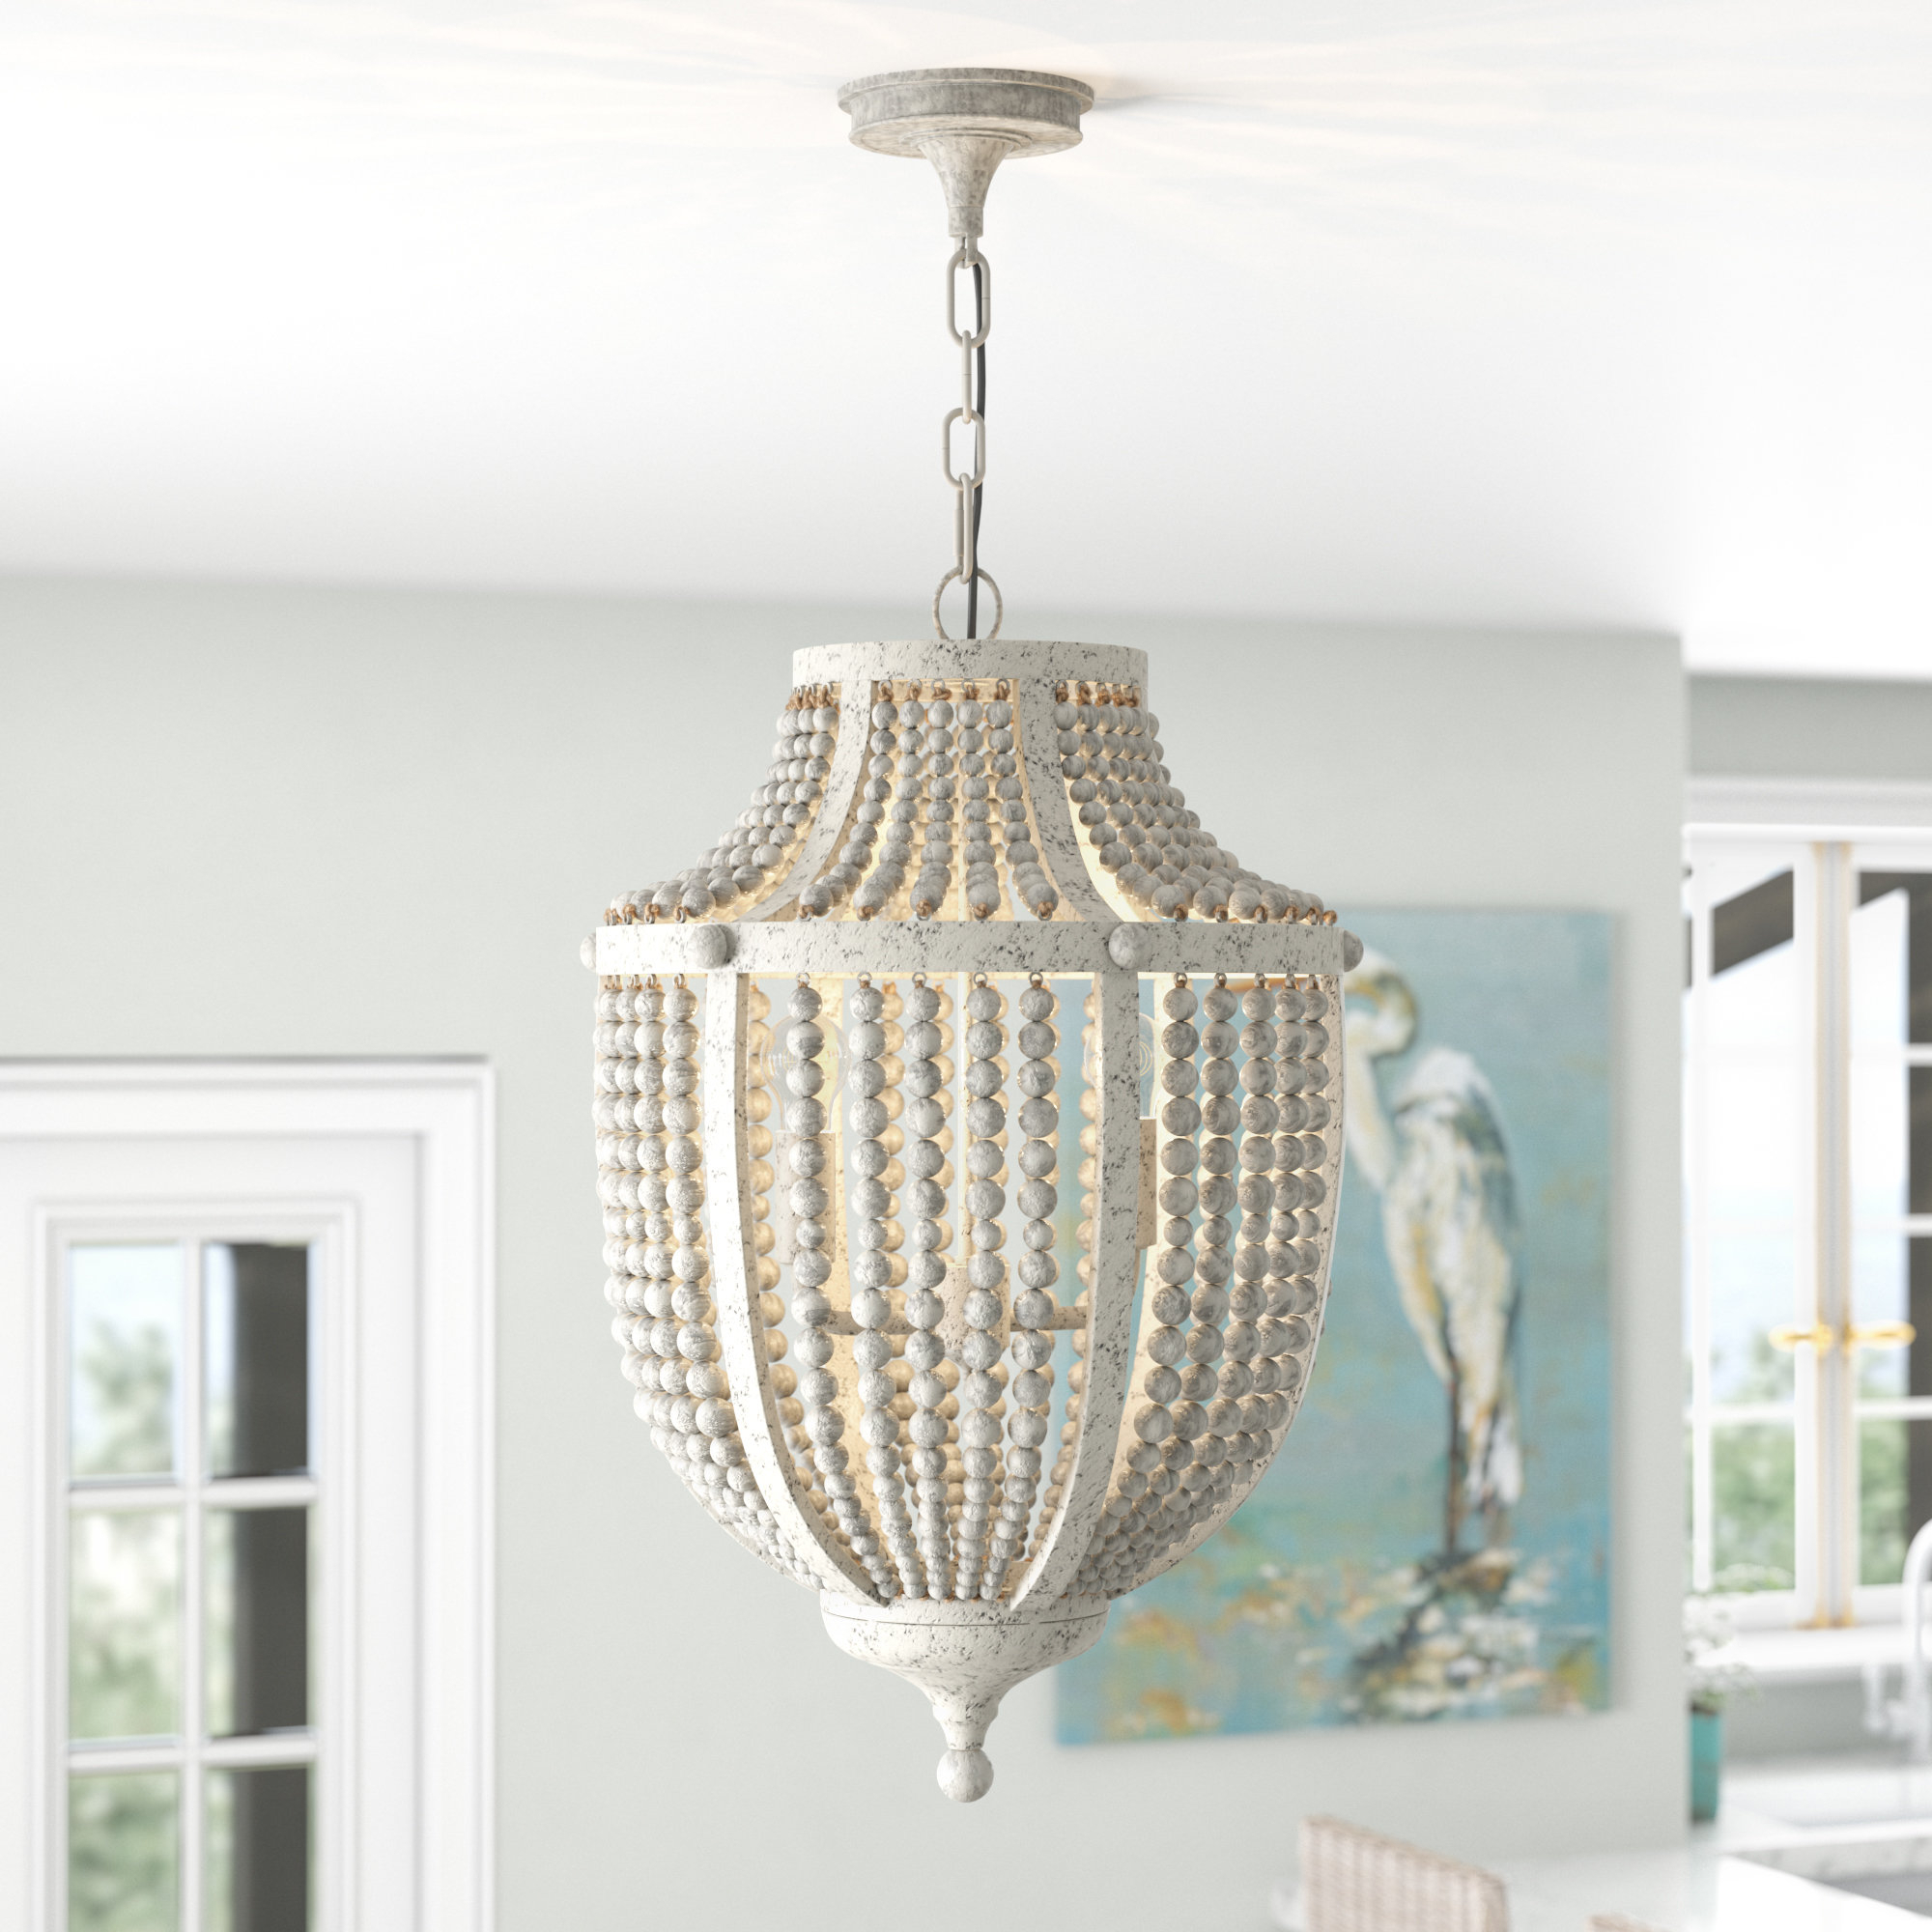 Most Up To Date Lyon 3 Light Unique / Statement Chandeliers Inside Beachcrest Home Nailwell 2 Light Empire Chandelier & Reviews (View 11 of 25)